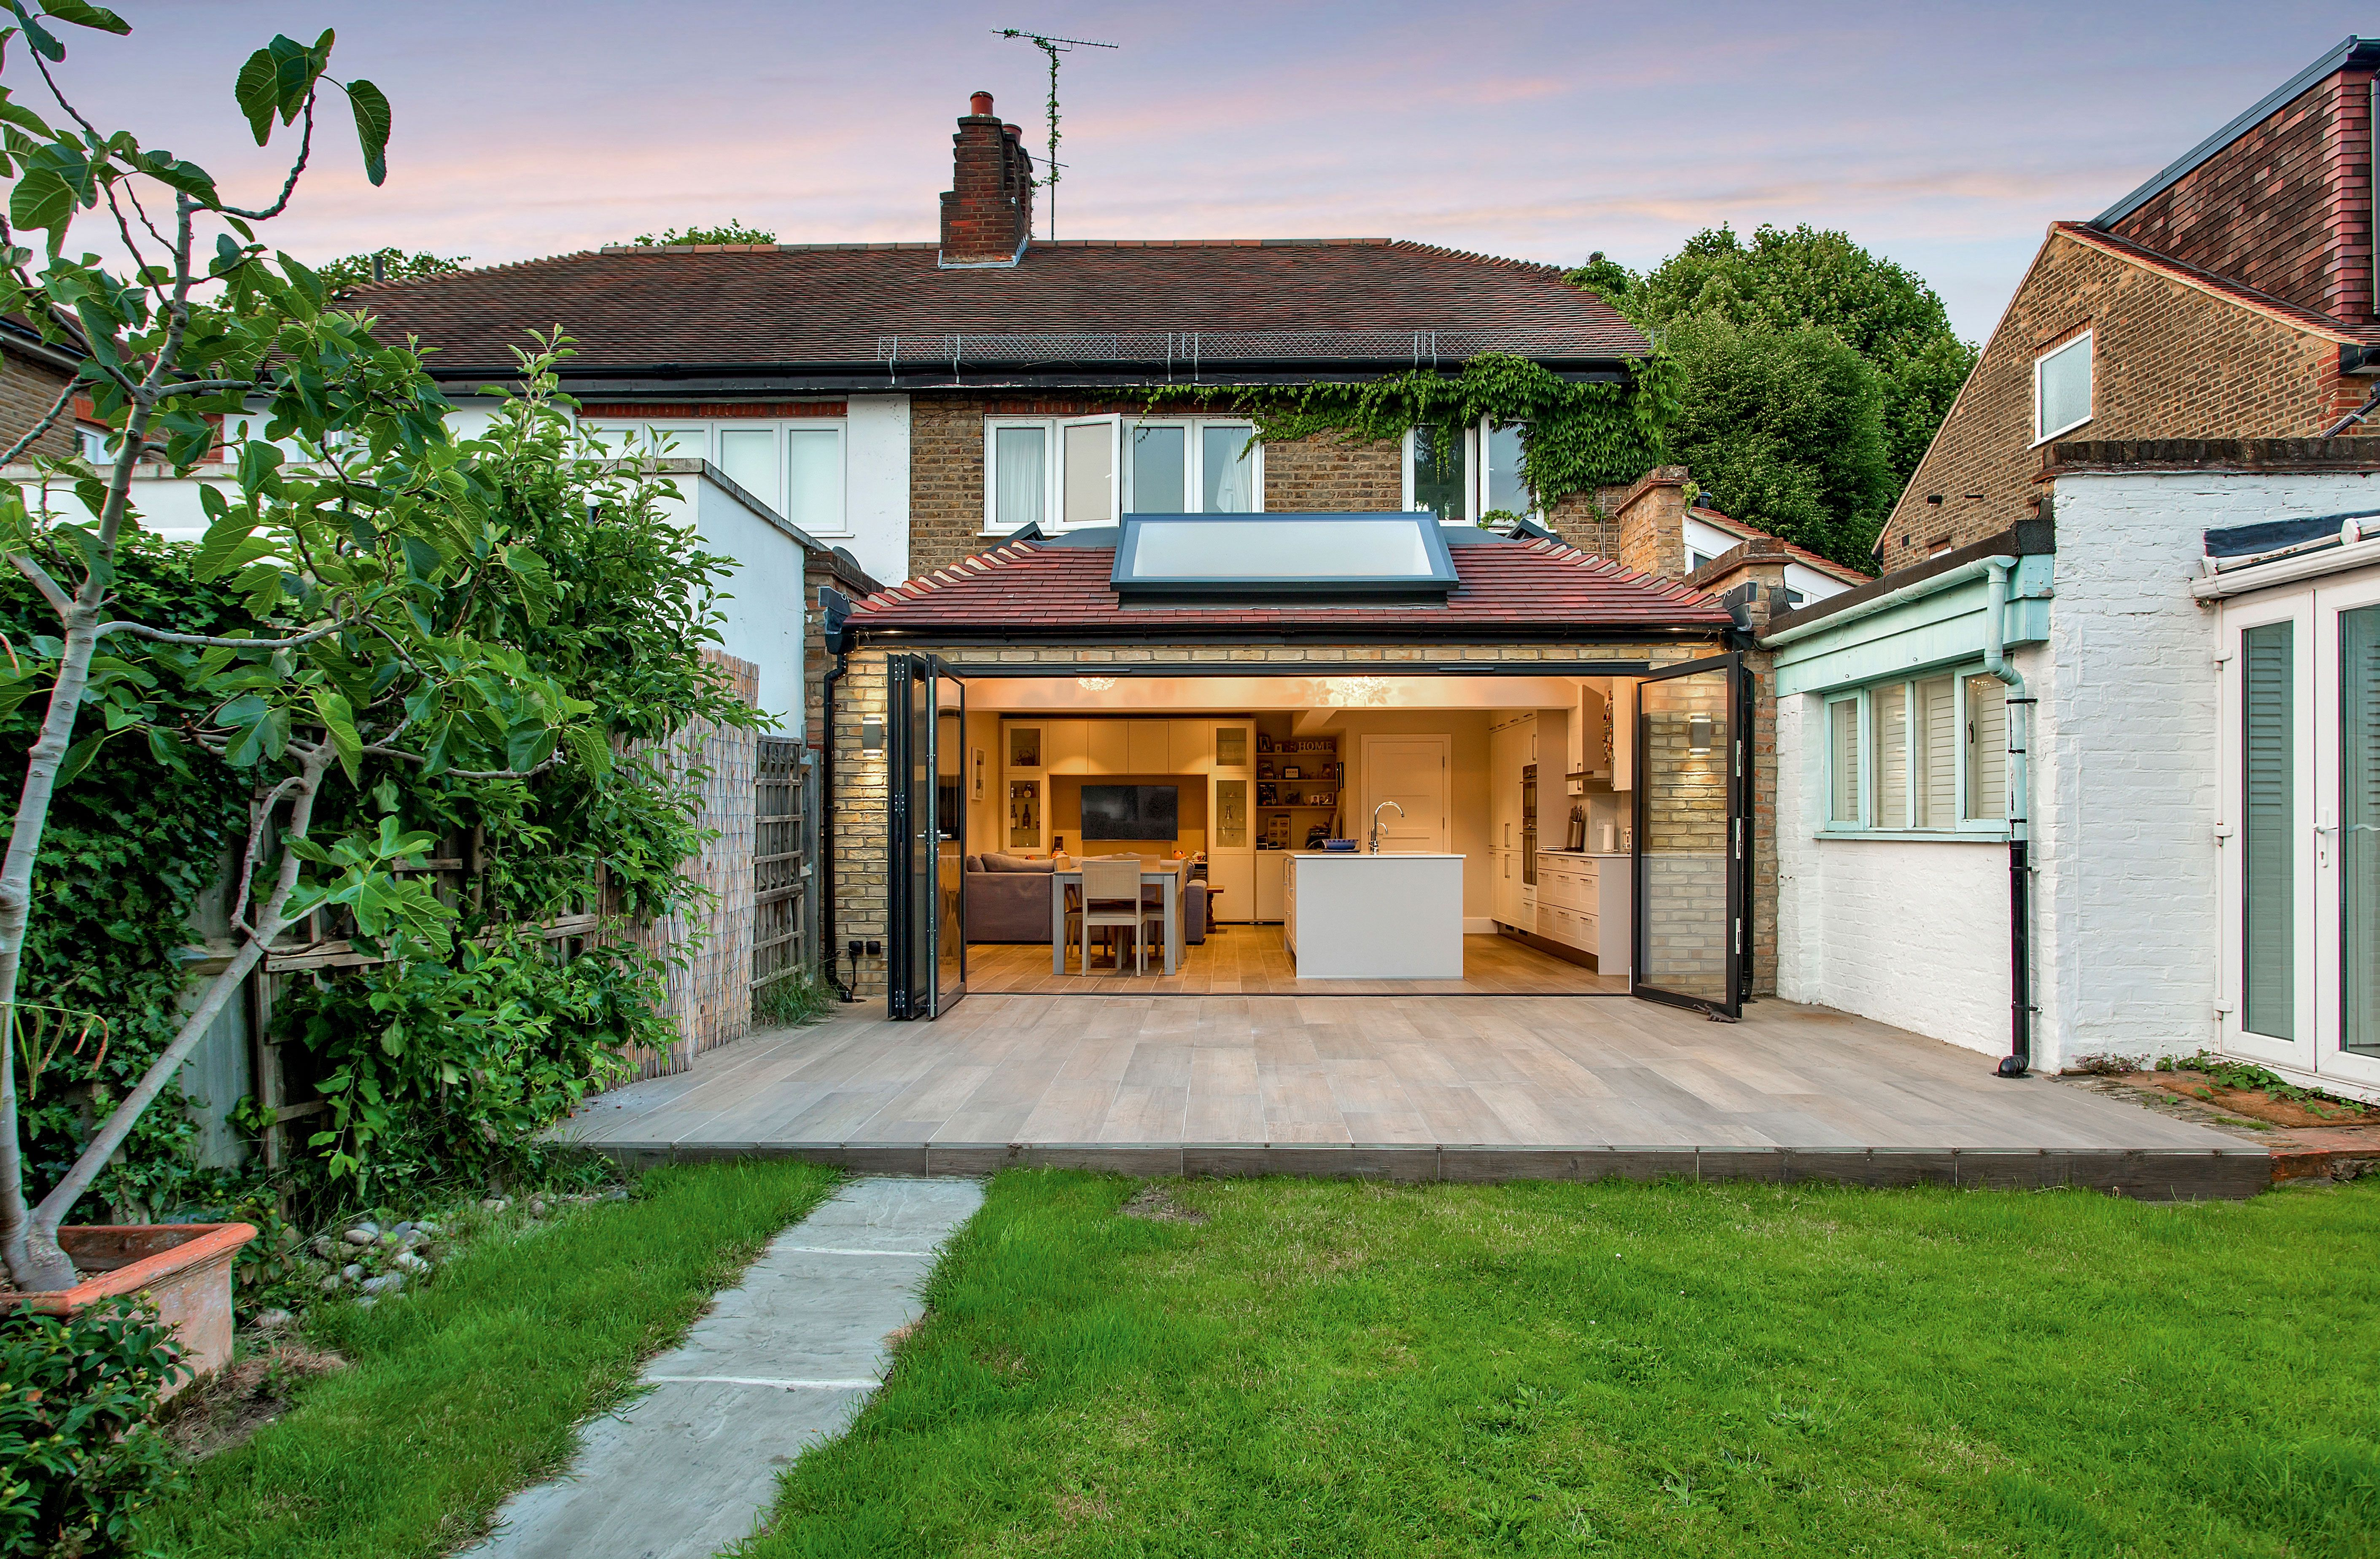 House Extensions Our Full Guide In 2020 Modern Residential Architecture House Extensions Backyard Renovations